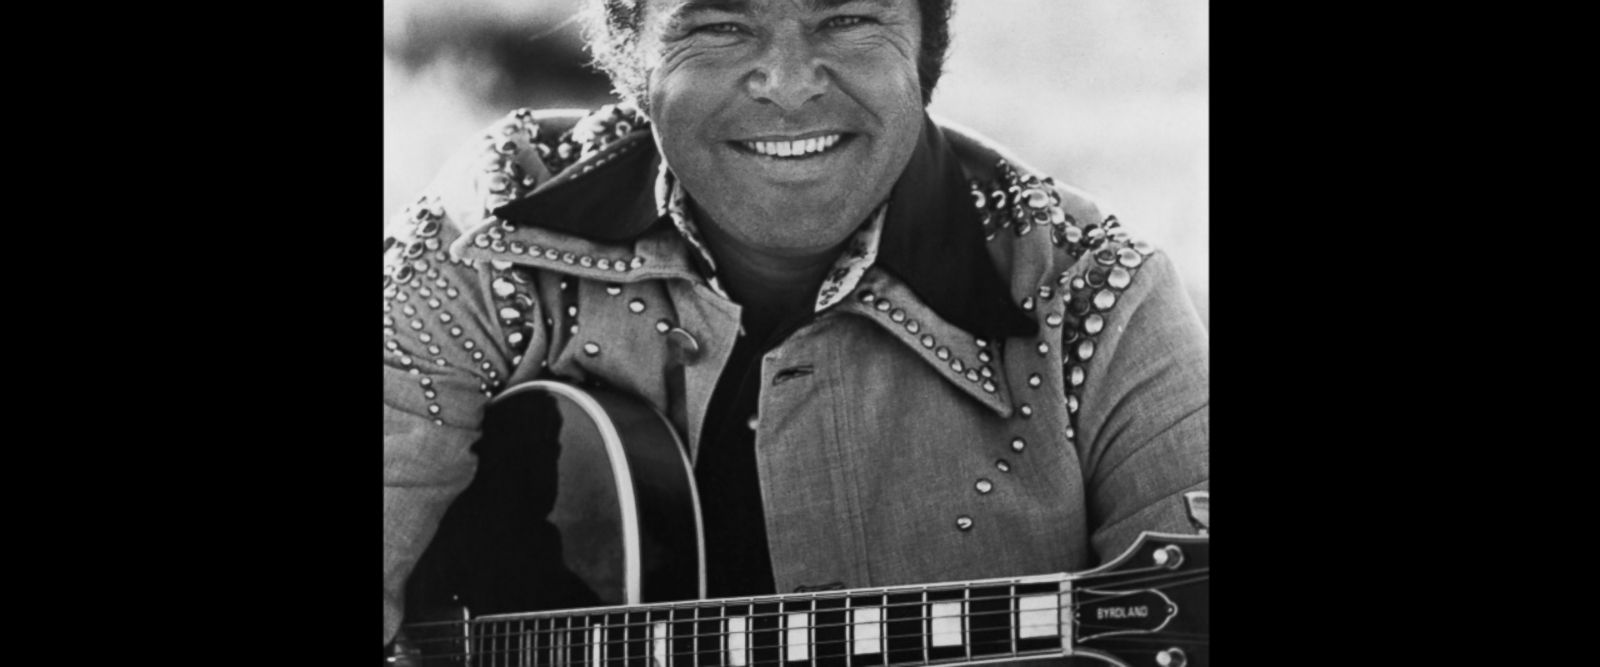 Country music legend Roy Clark has died, leaving behind decades of memorable music.